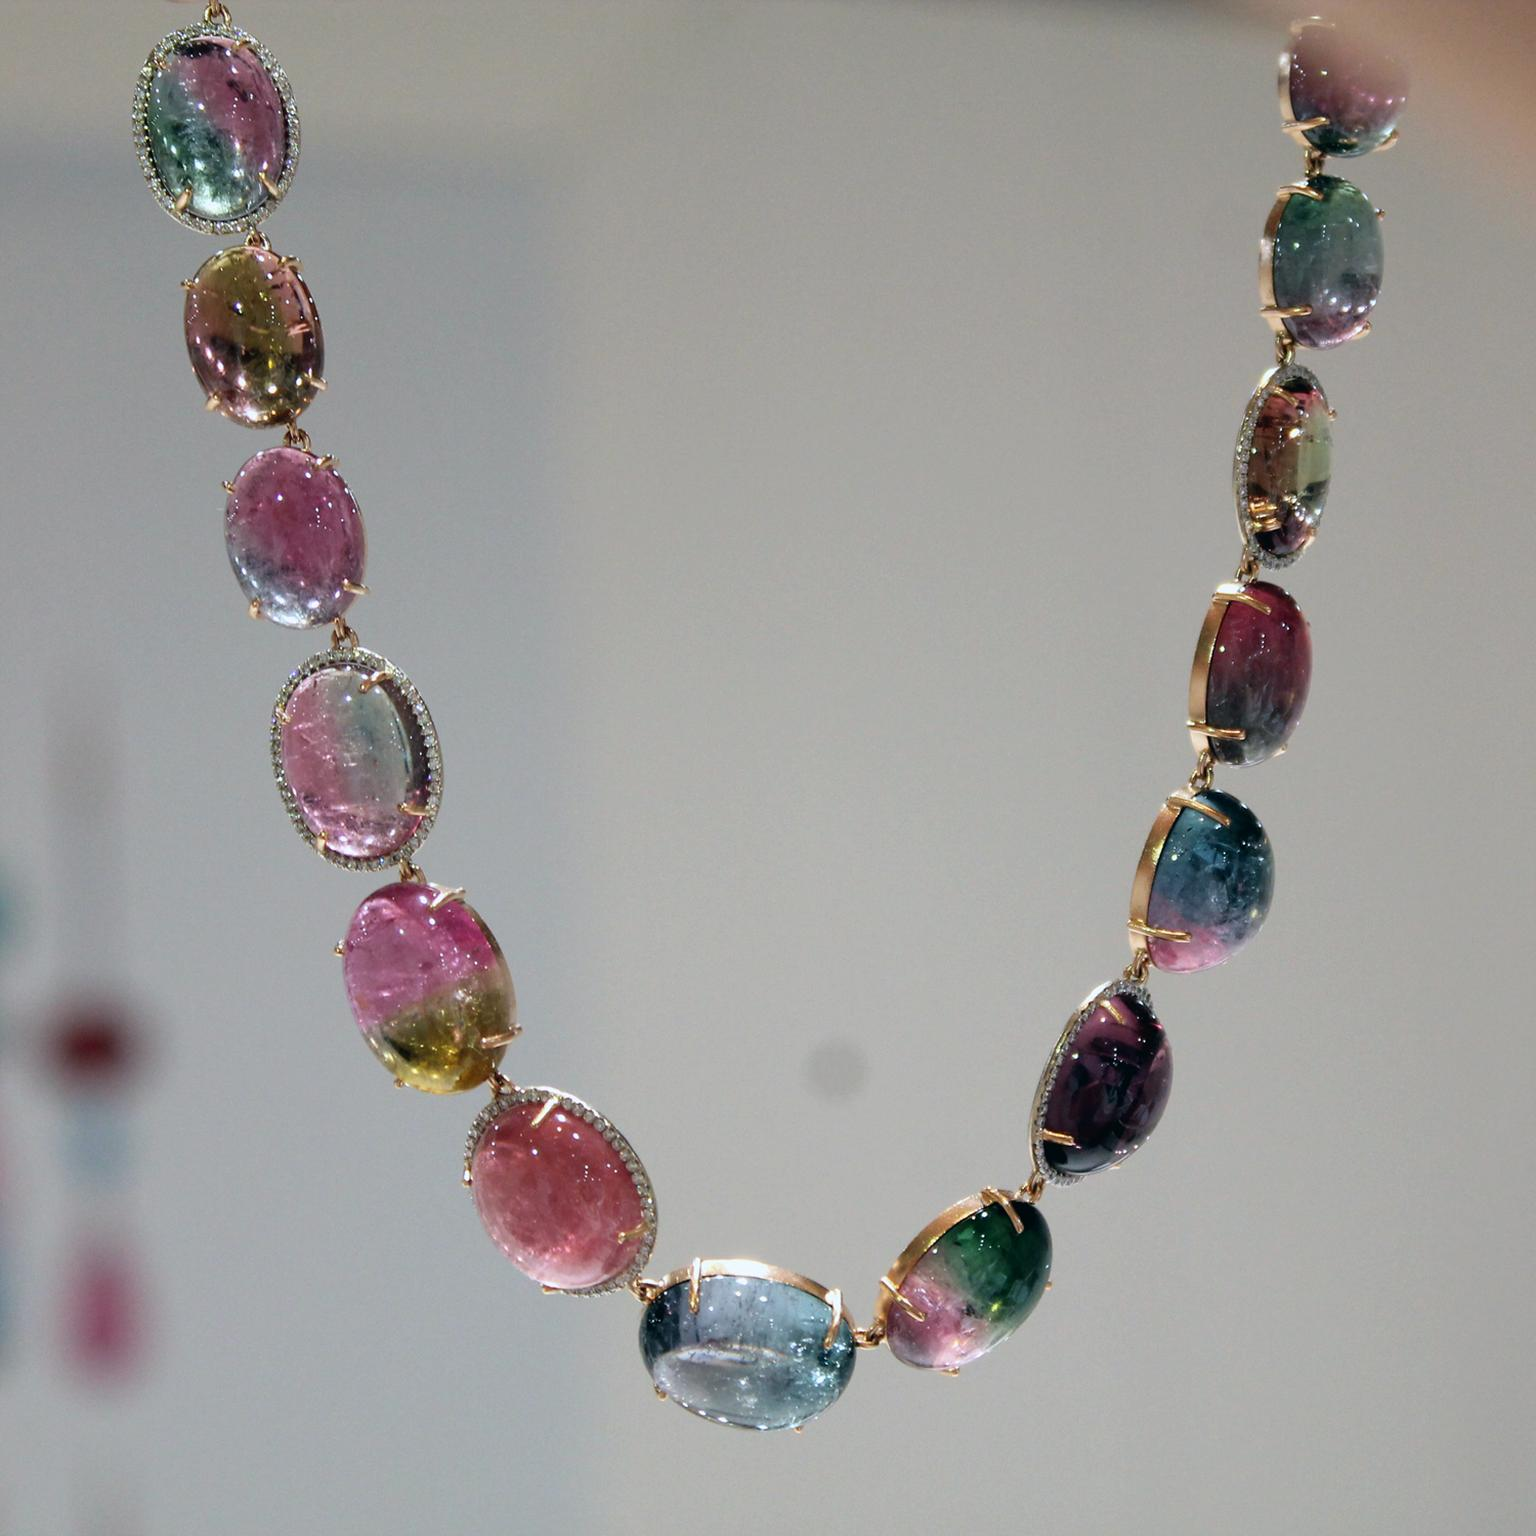 Irene Neuwirth bi-colour tourmaline necklace